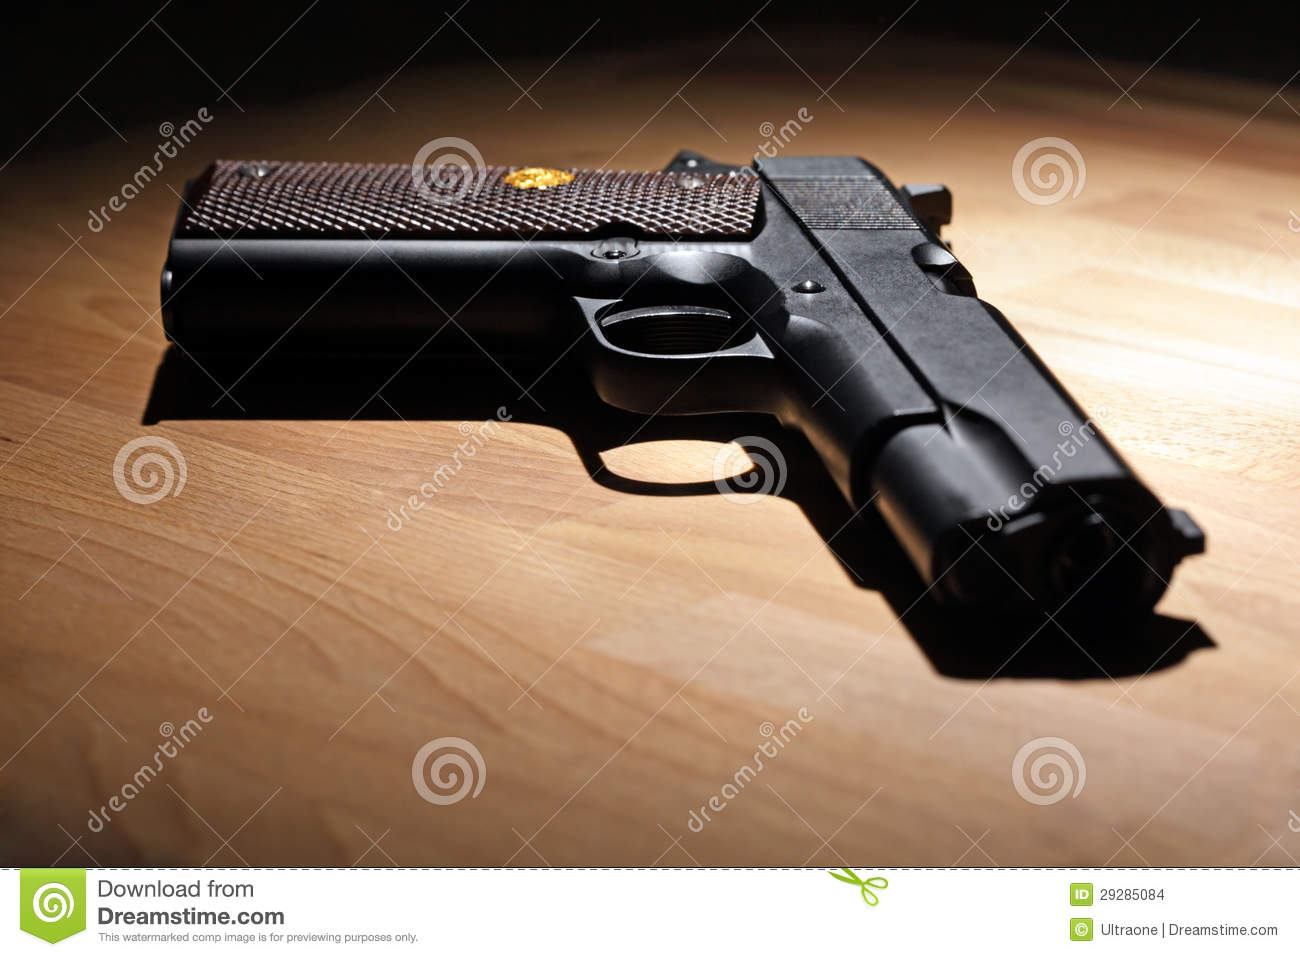 Pistol On The Table Stock Images - Image: 29285084